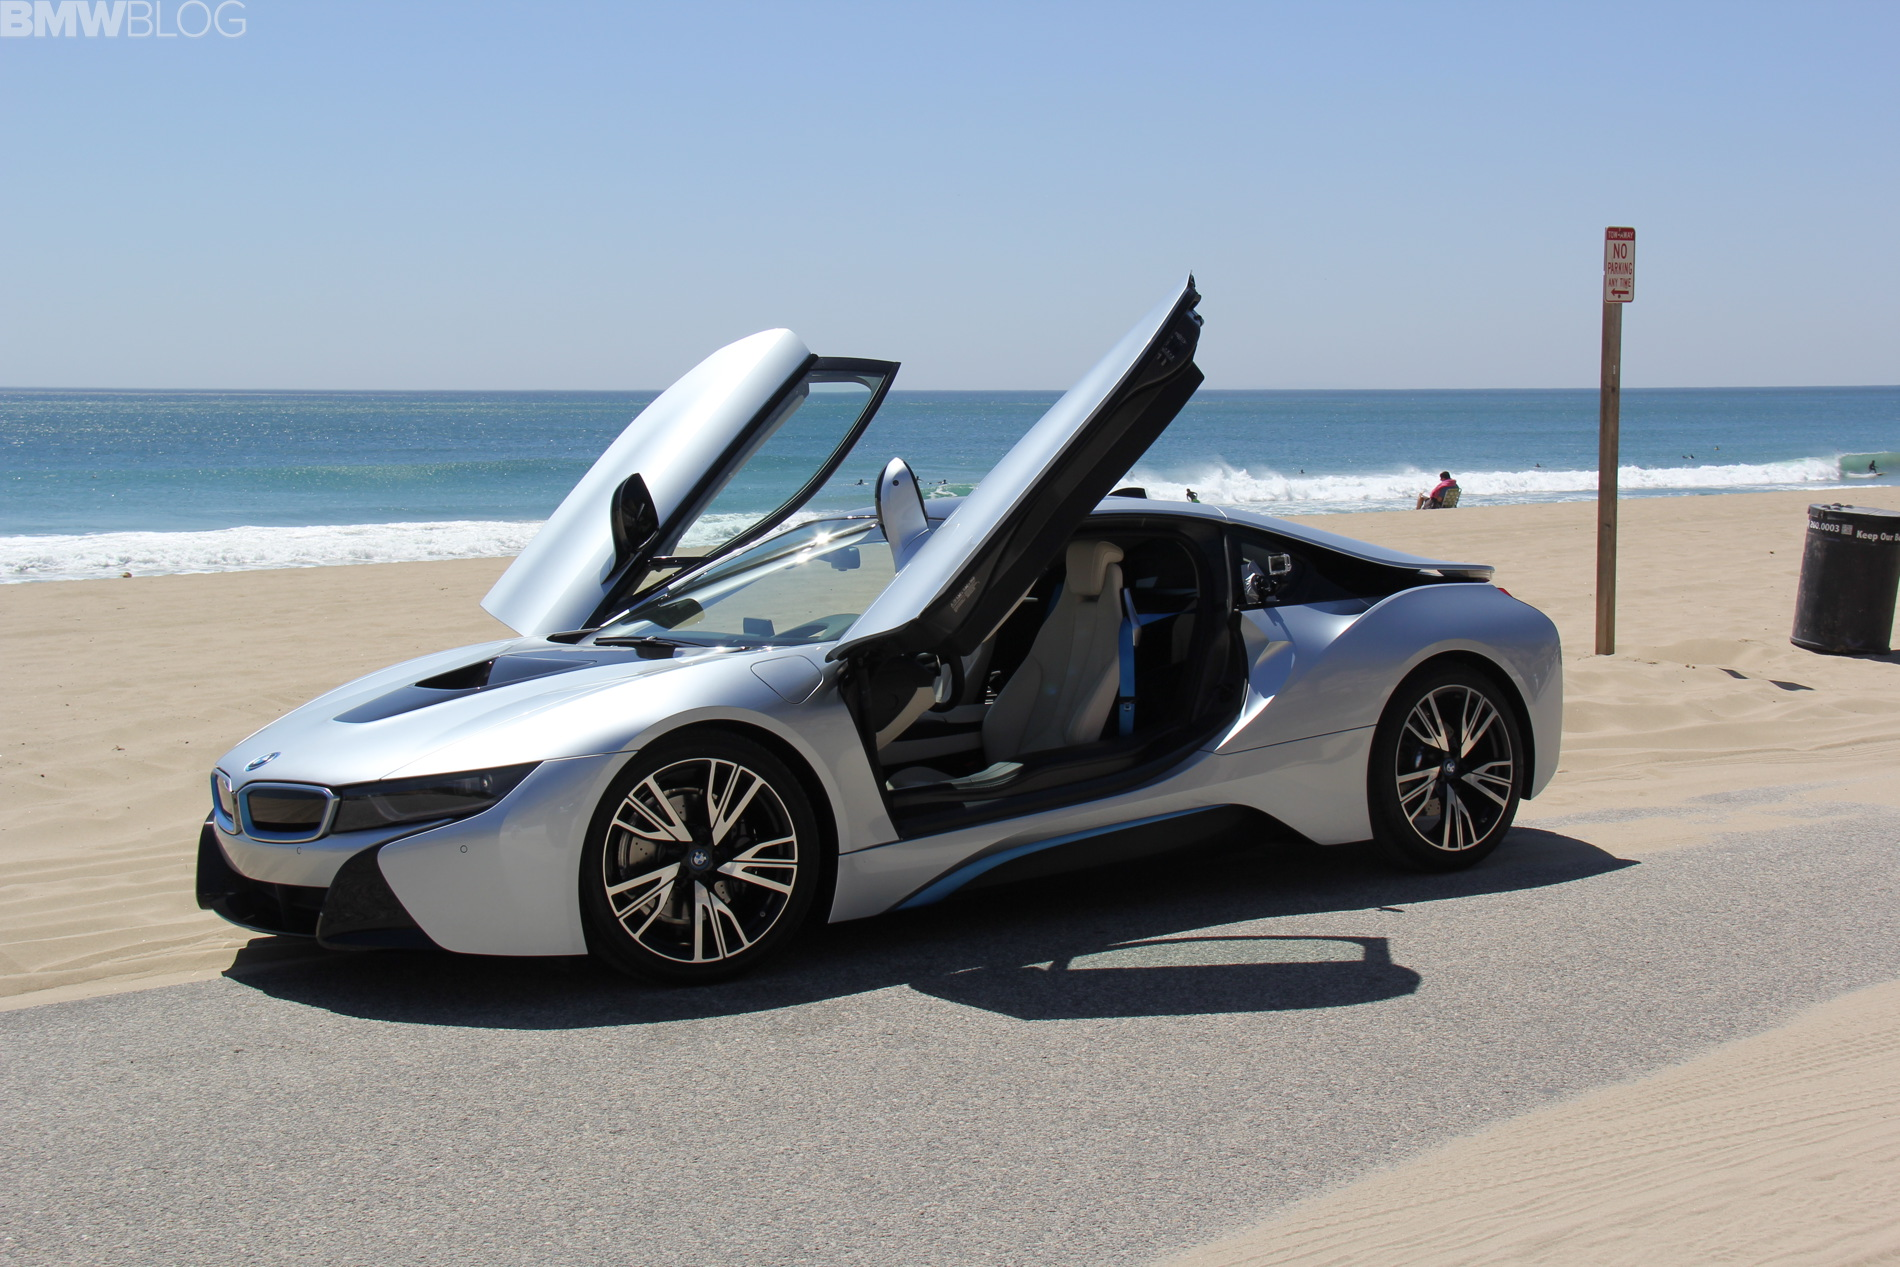 2015 bmw i8 drive review bmwblog 49